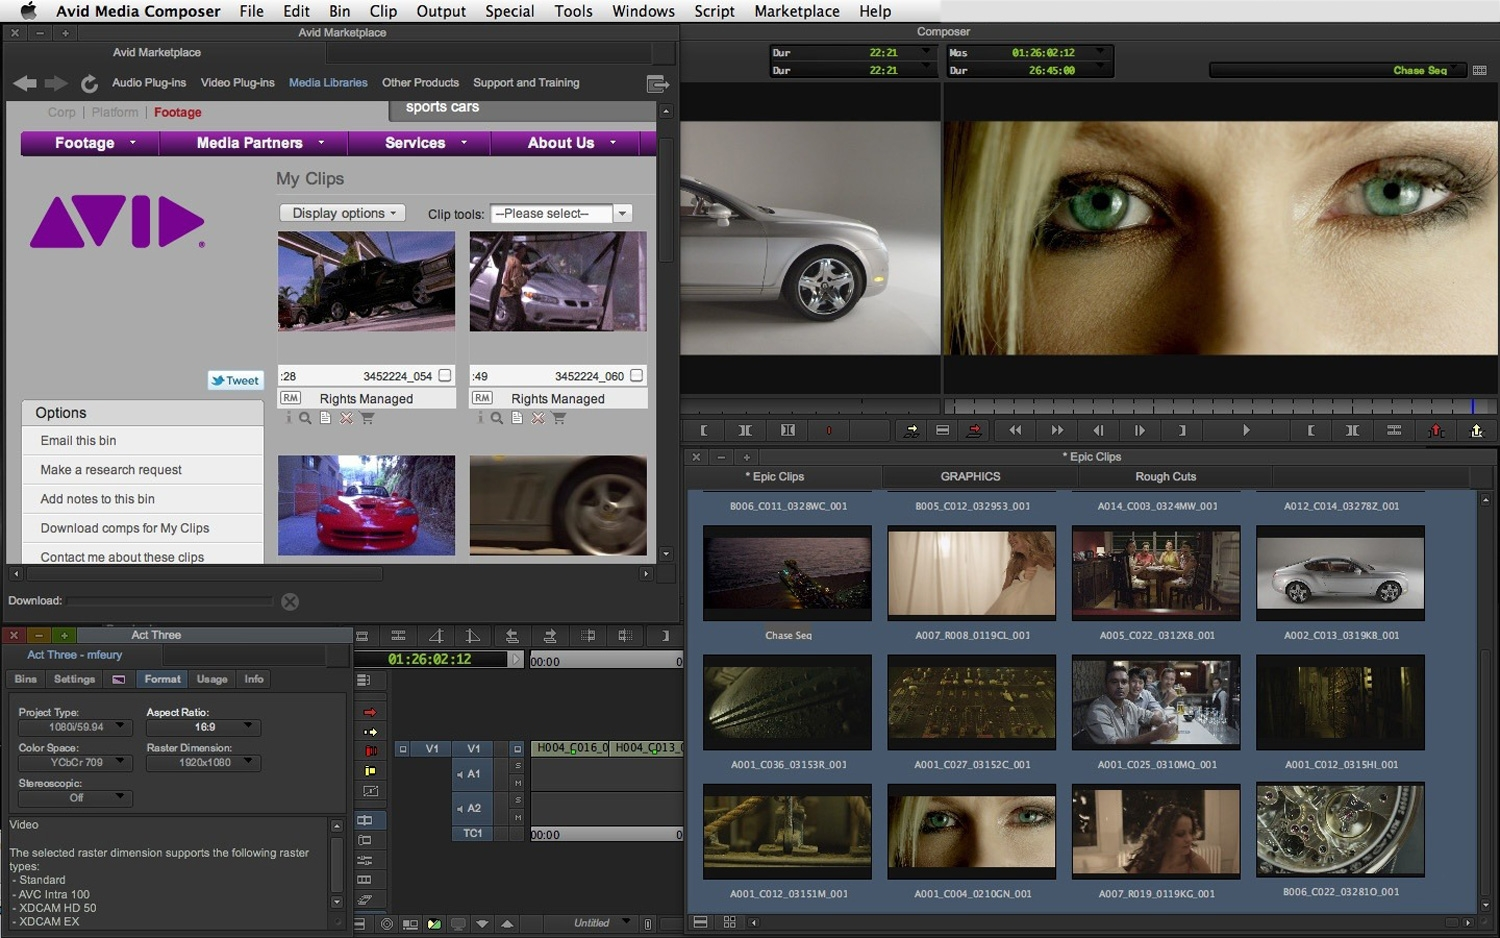 Avid Media Composer 8 4 5 With Crack/Patch Free Download